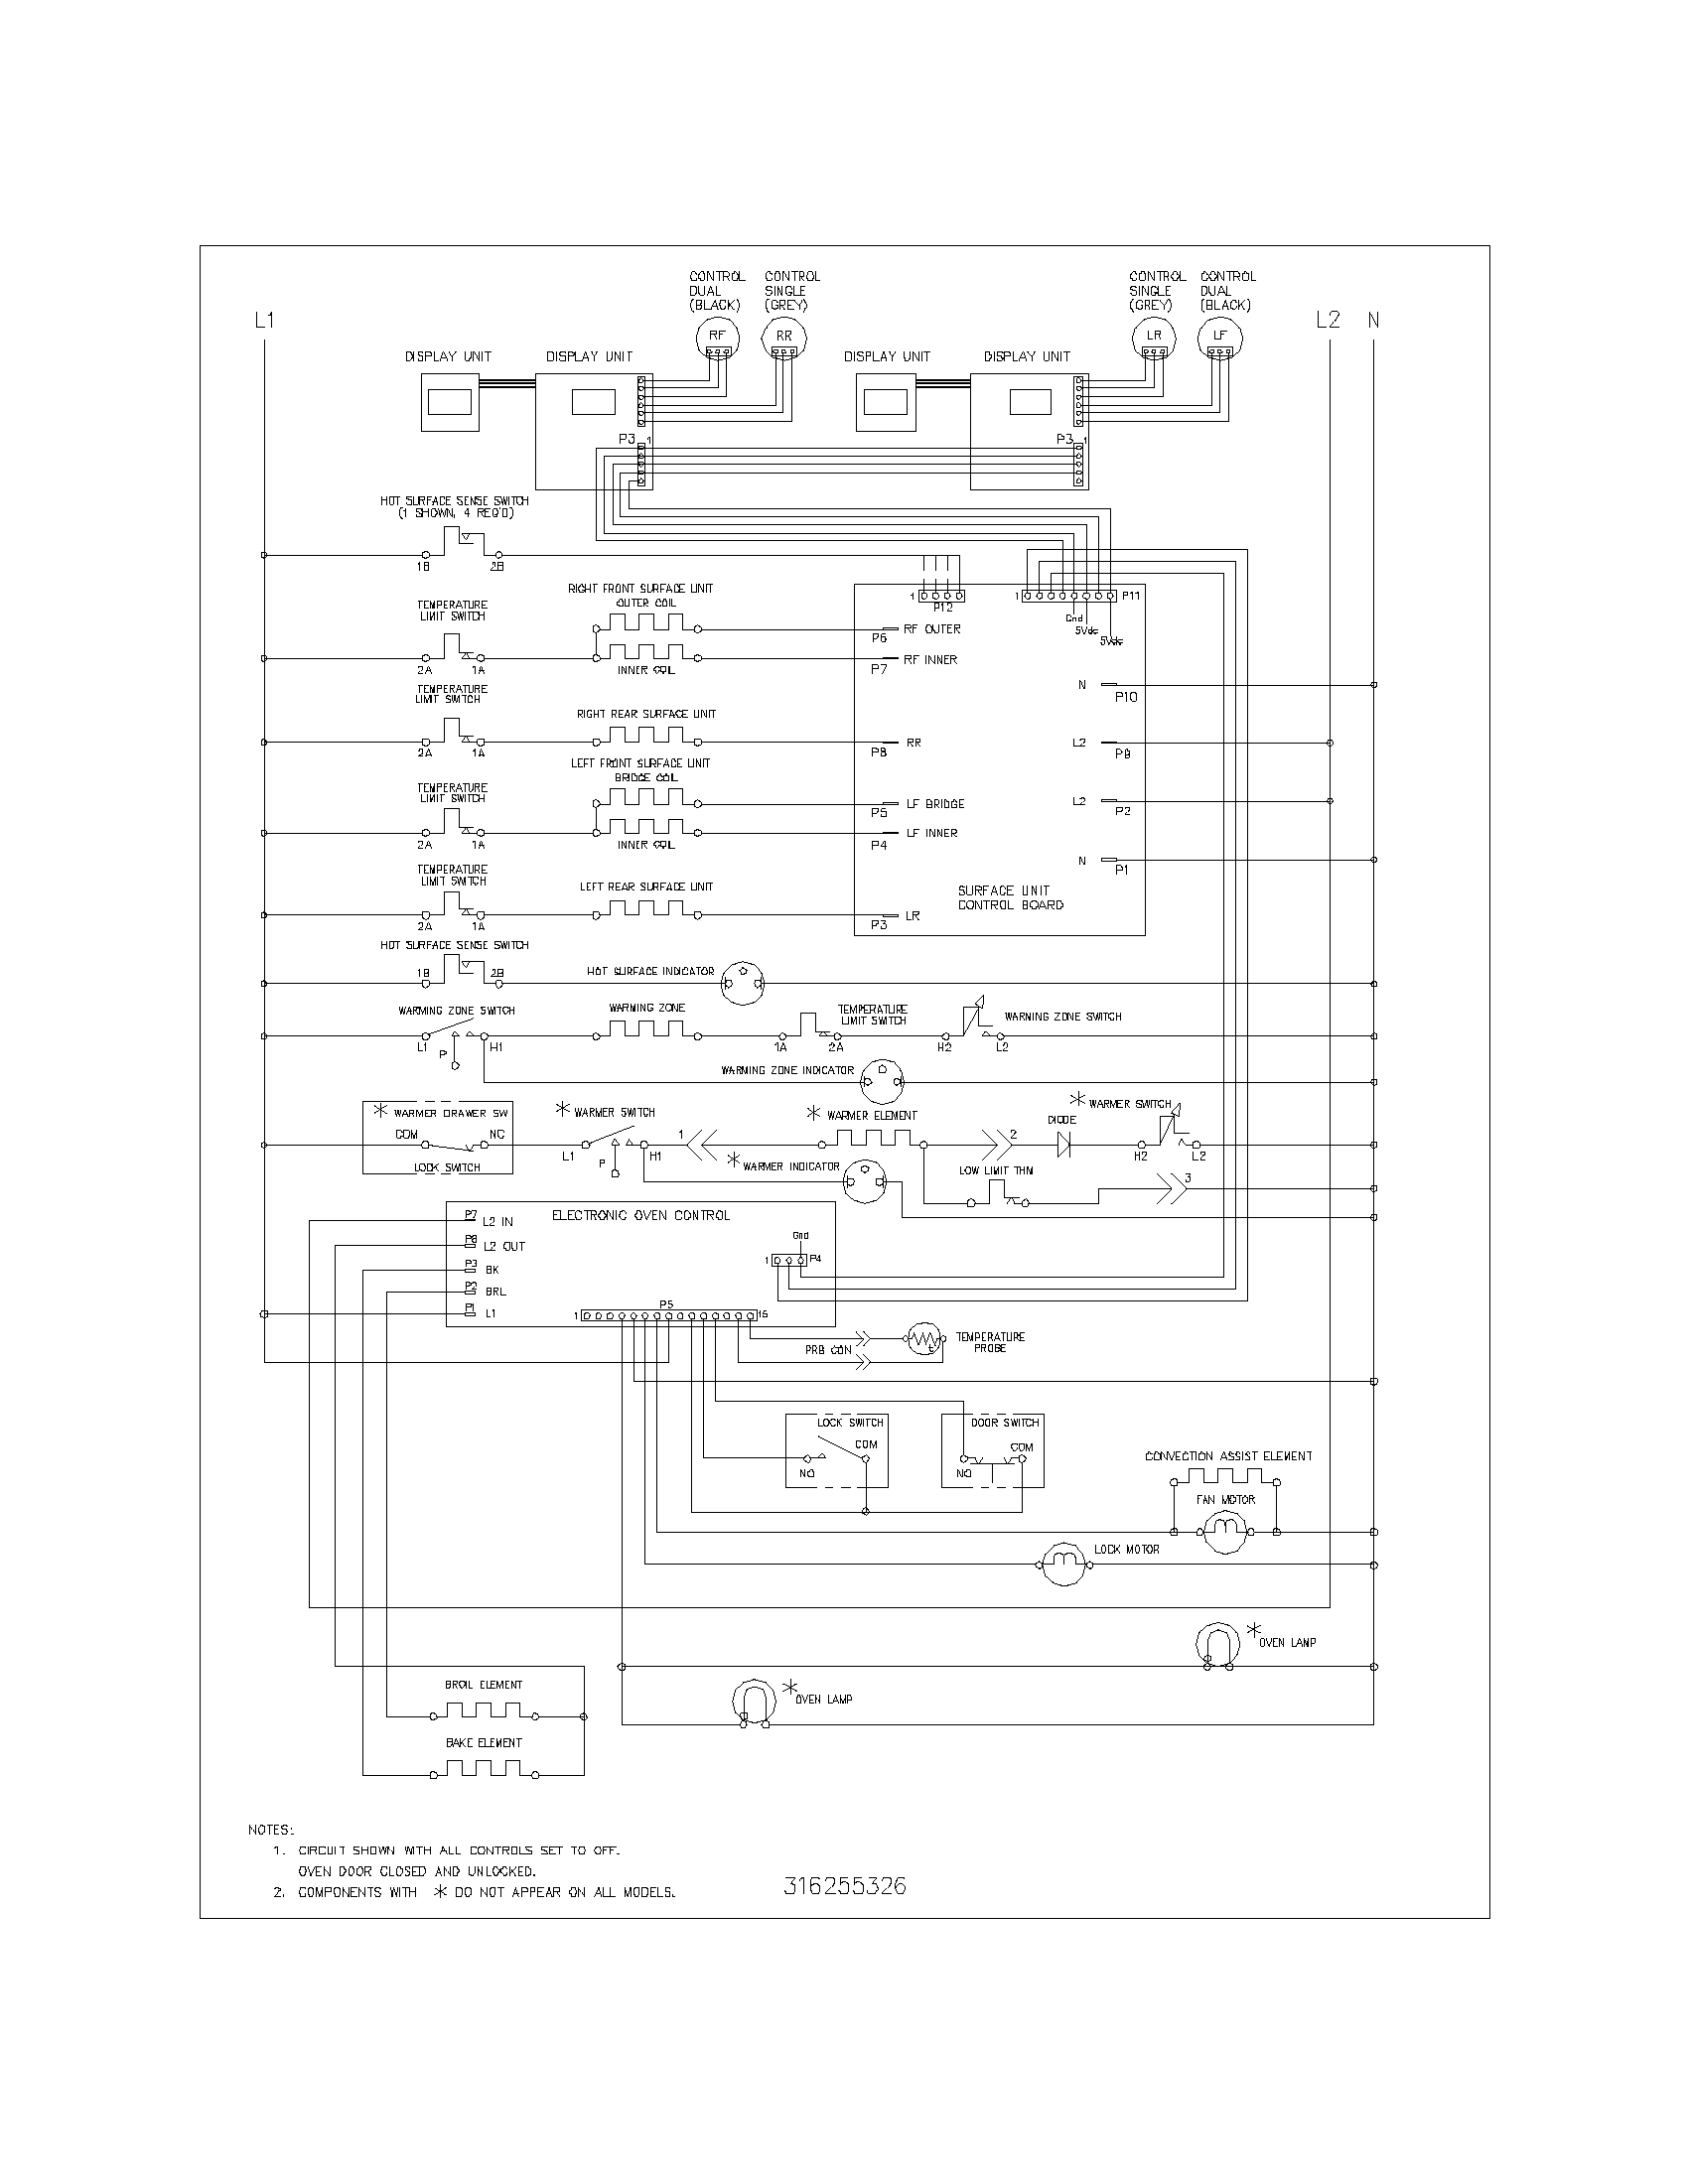 wiring diagram for frigidaire range – the wiring diagram,Wiring diagram,Wiring Diagram For Frigidaire Range